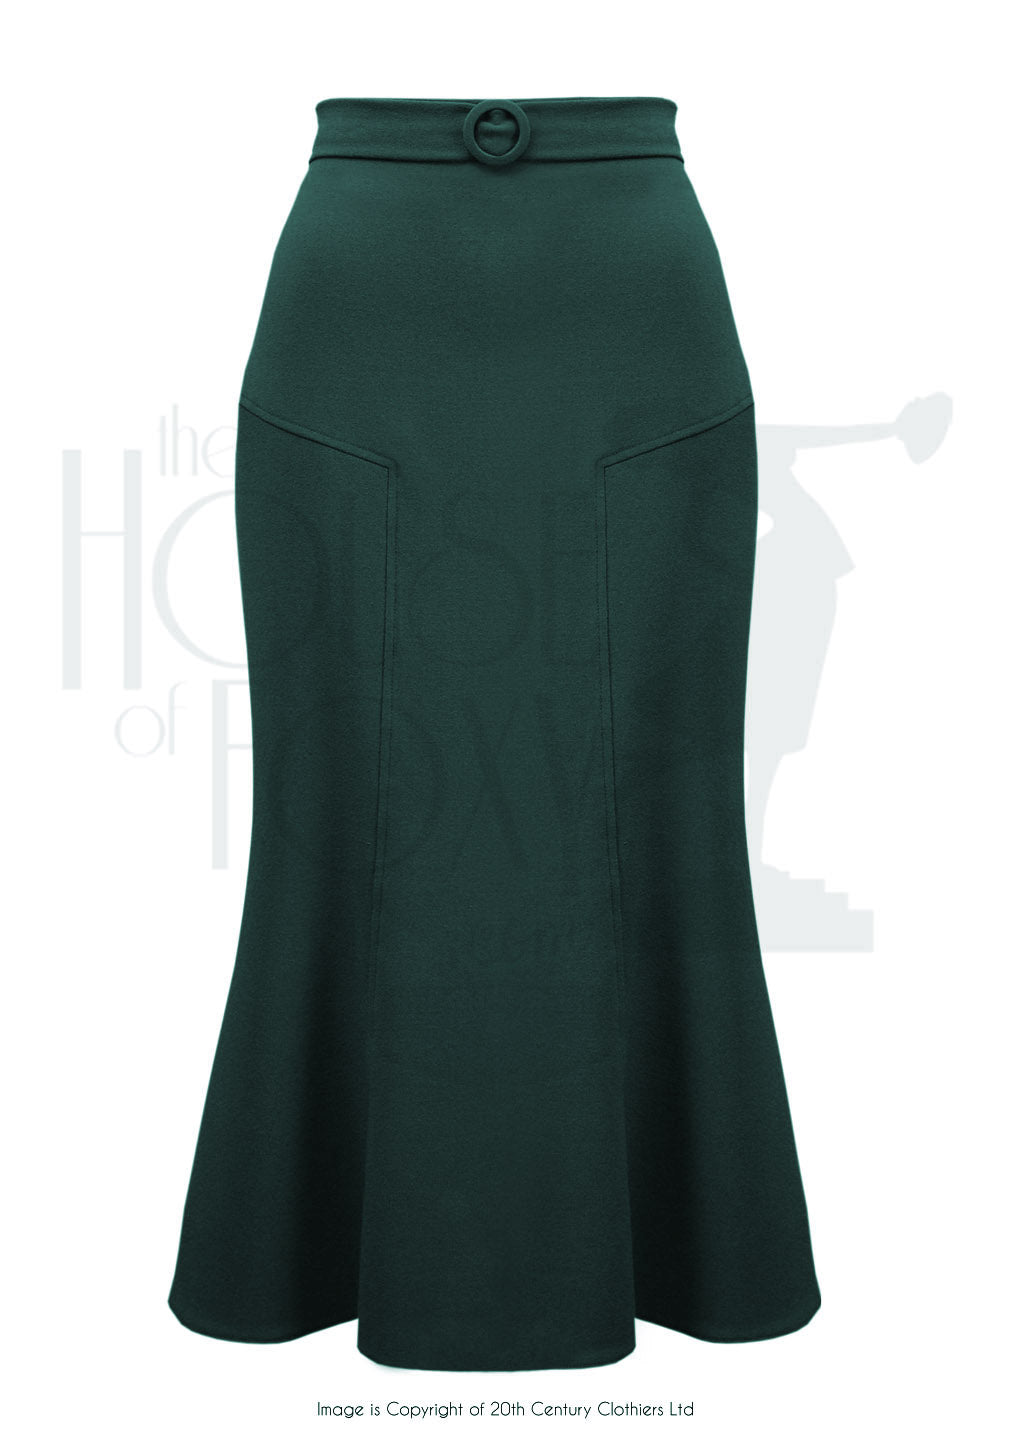 House Of Foxy 1930's Deco Panel Skirt in Bottle Green